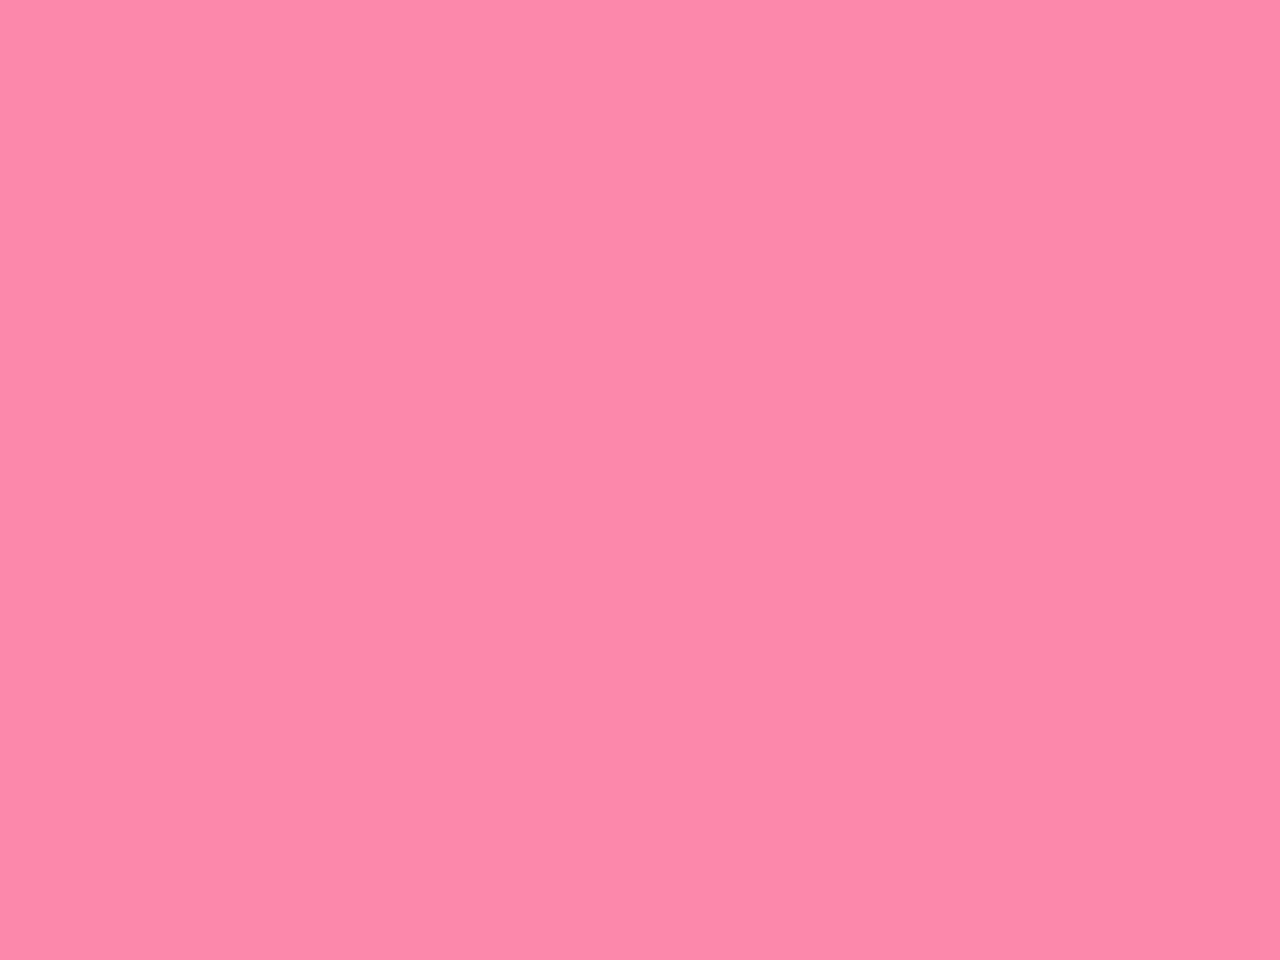 1280x960 Tickle Me Pink Solid Color Background